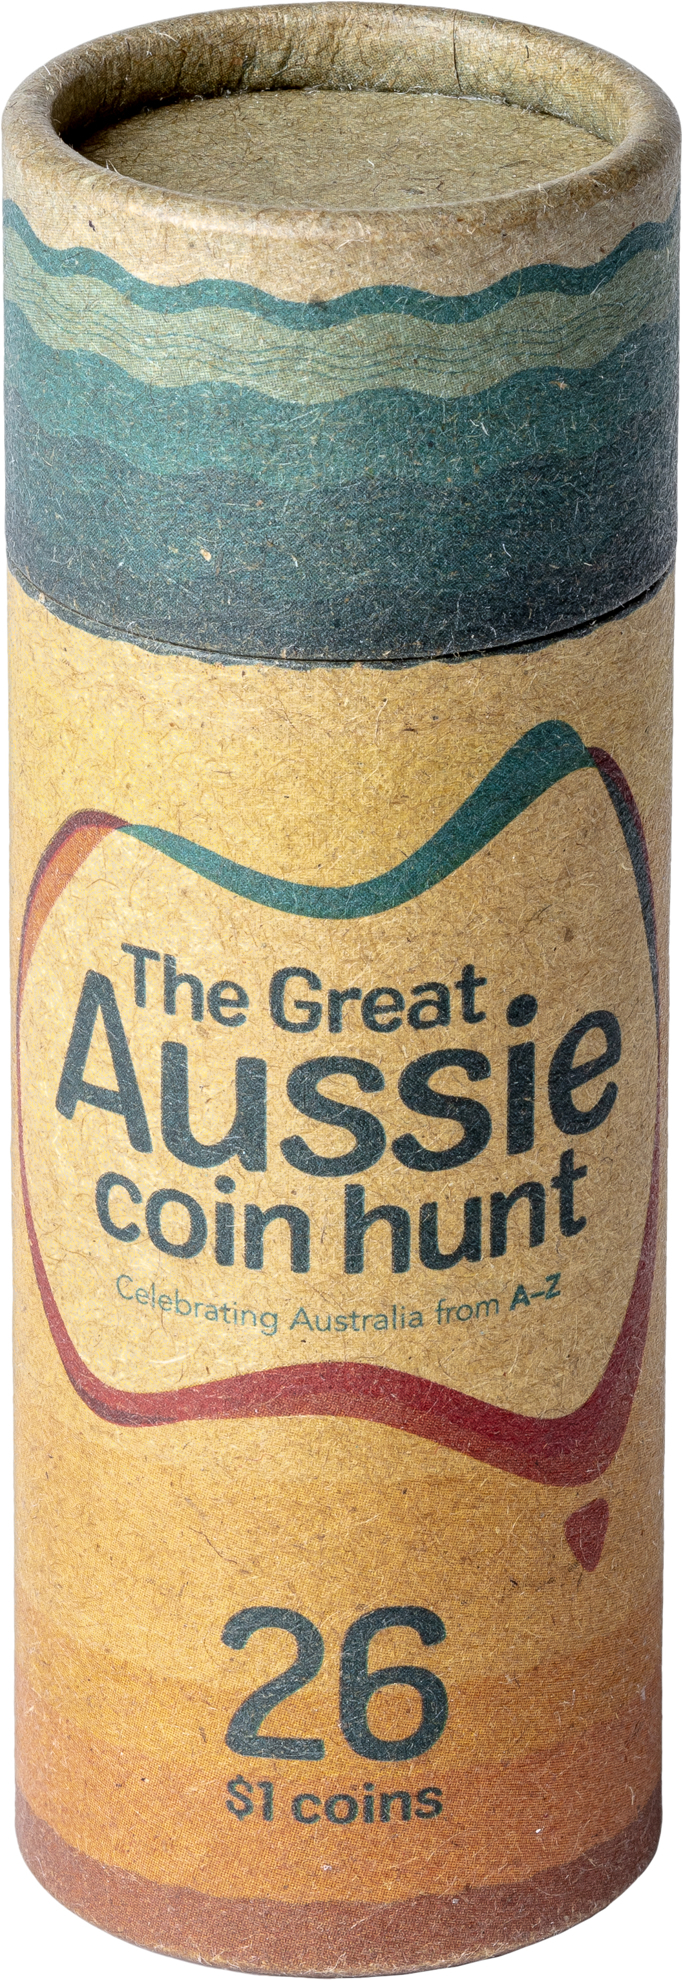 One Dollar 2019 A - Australia Post: Photo Great Aussie Coin Hunt - Collection Folder with Coins